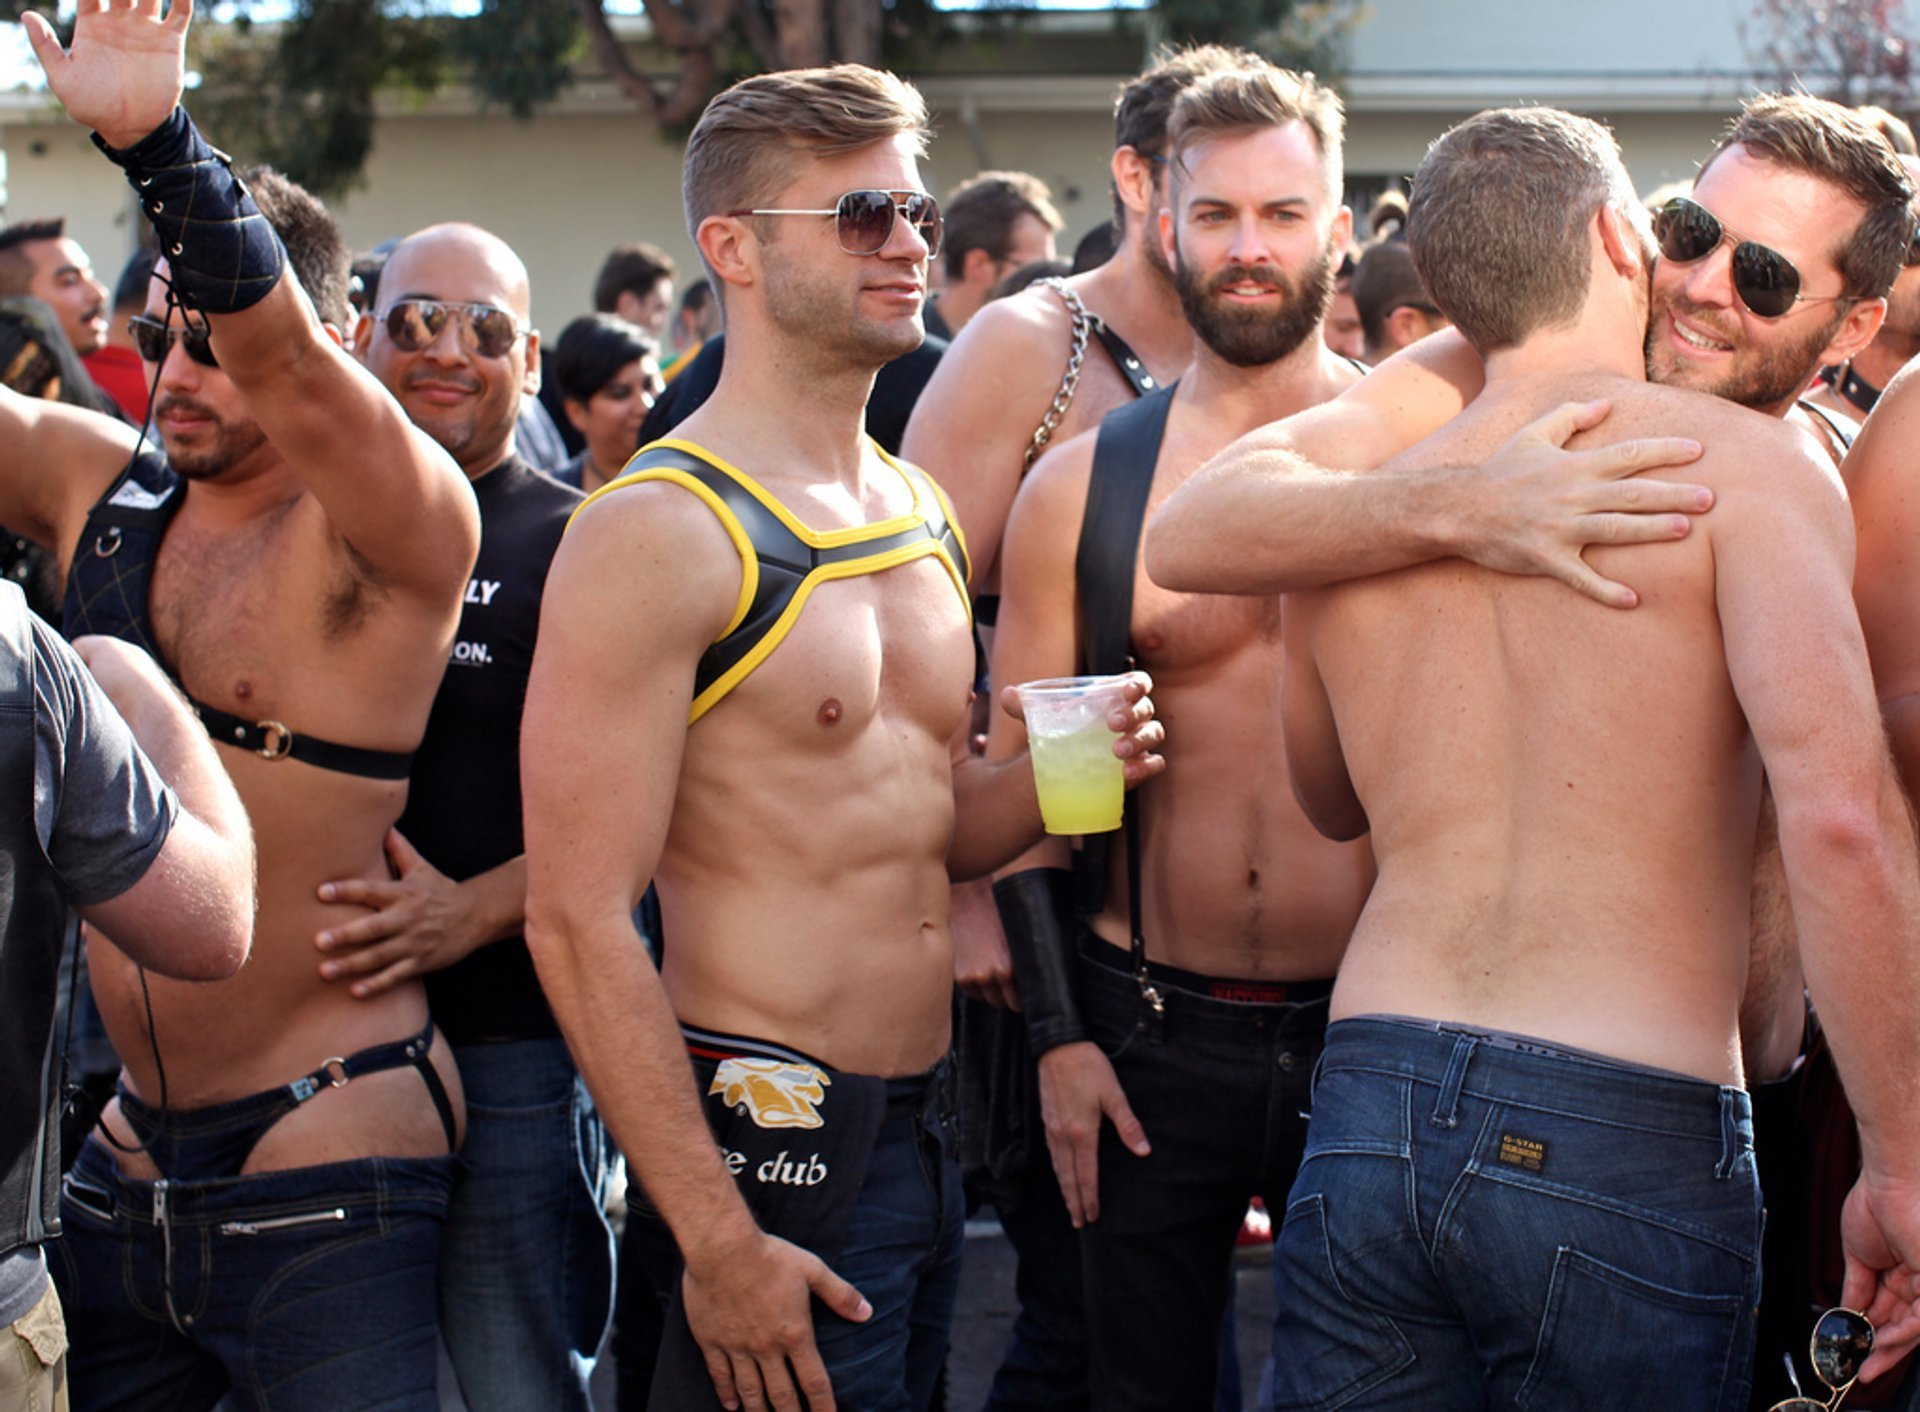 At folsom street fair